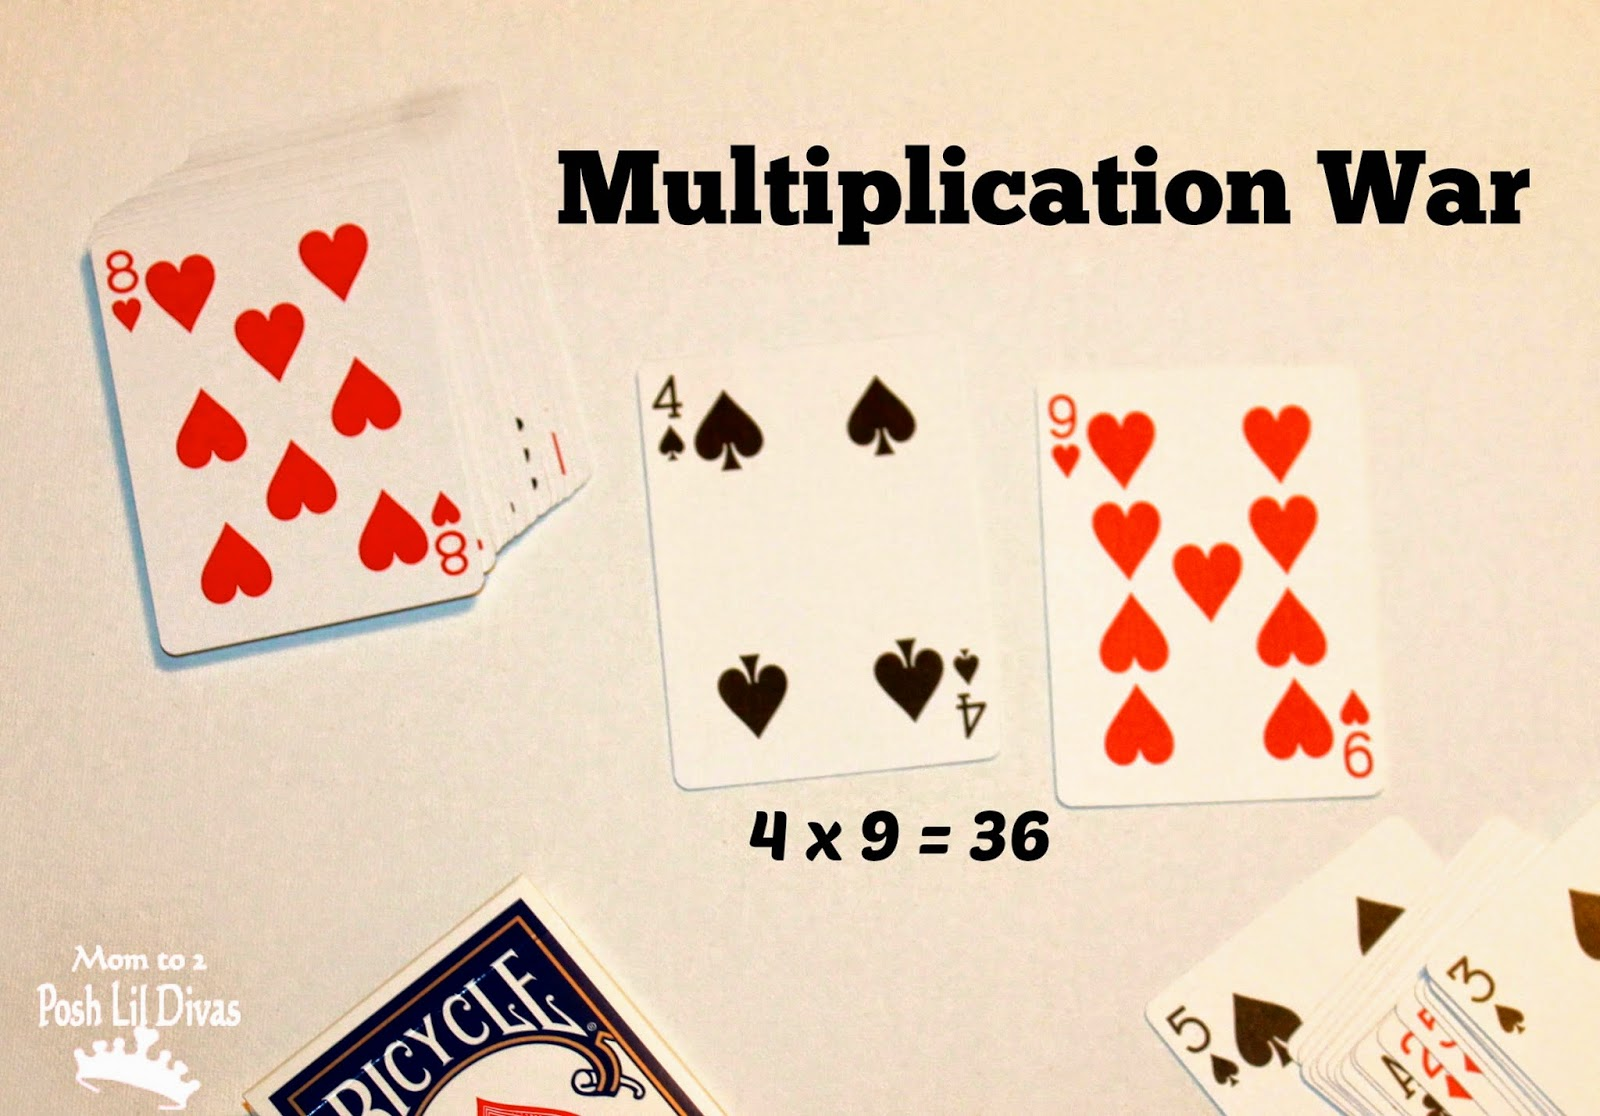 multiplication war card game directions